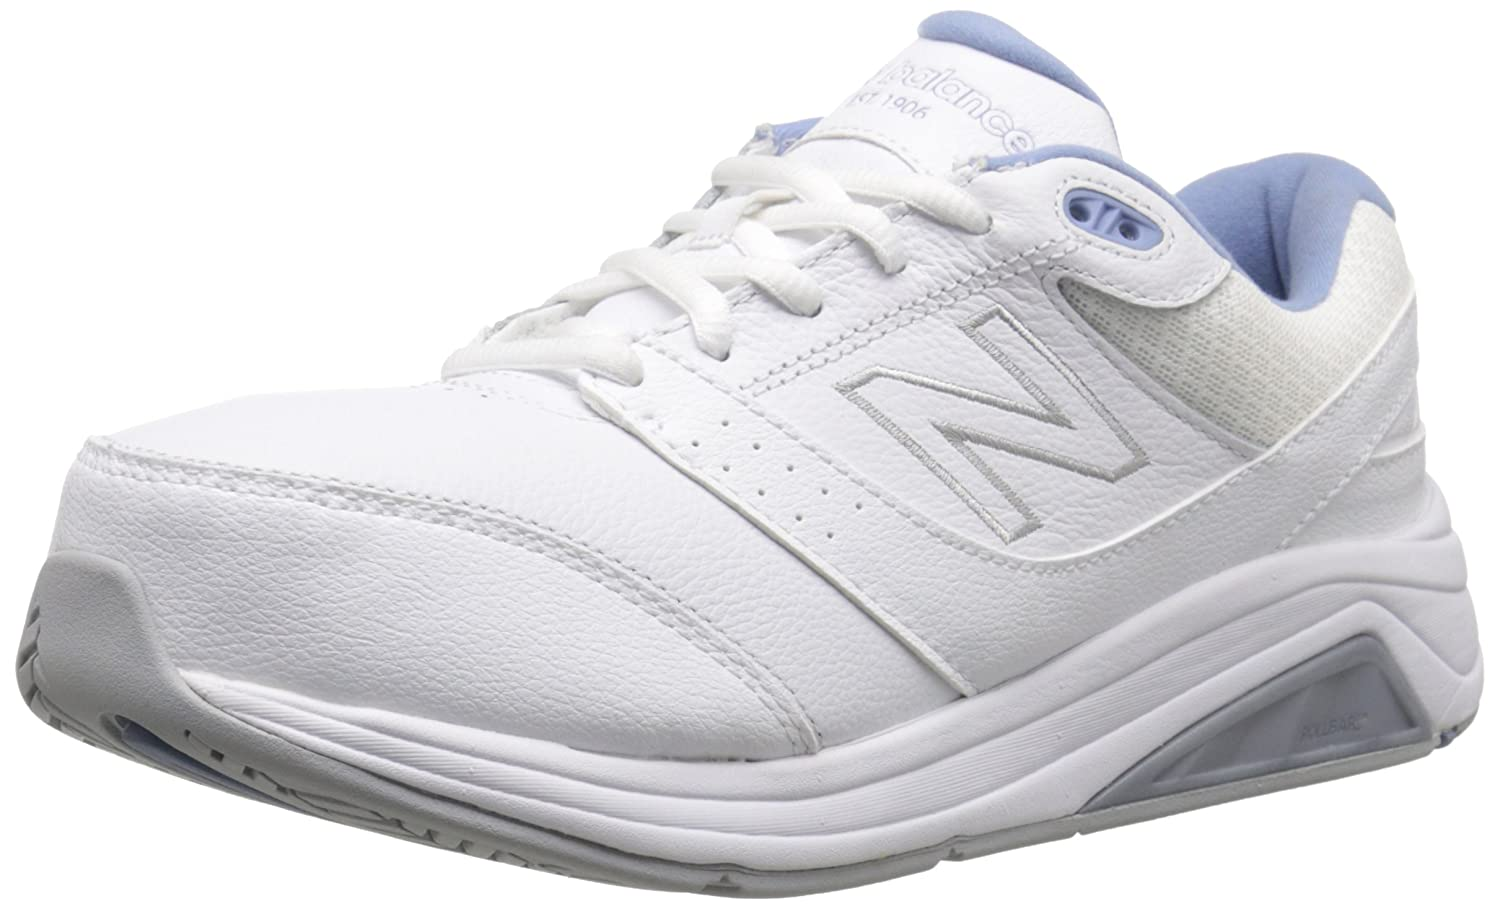 New Balance Women's 928v2 Walking Shoe B00Z7KCCX6 13 2E US|White/Blue